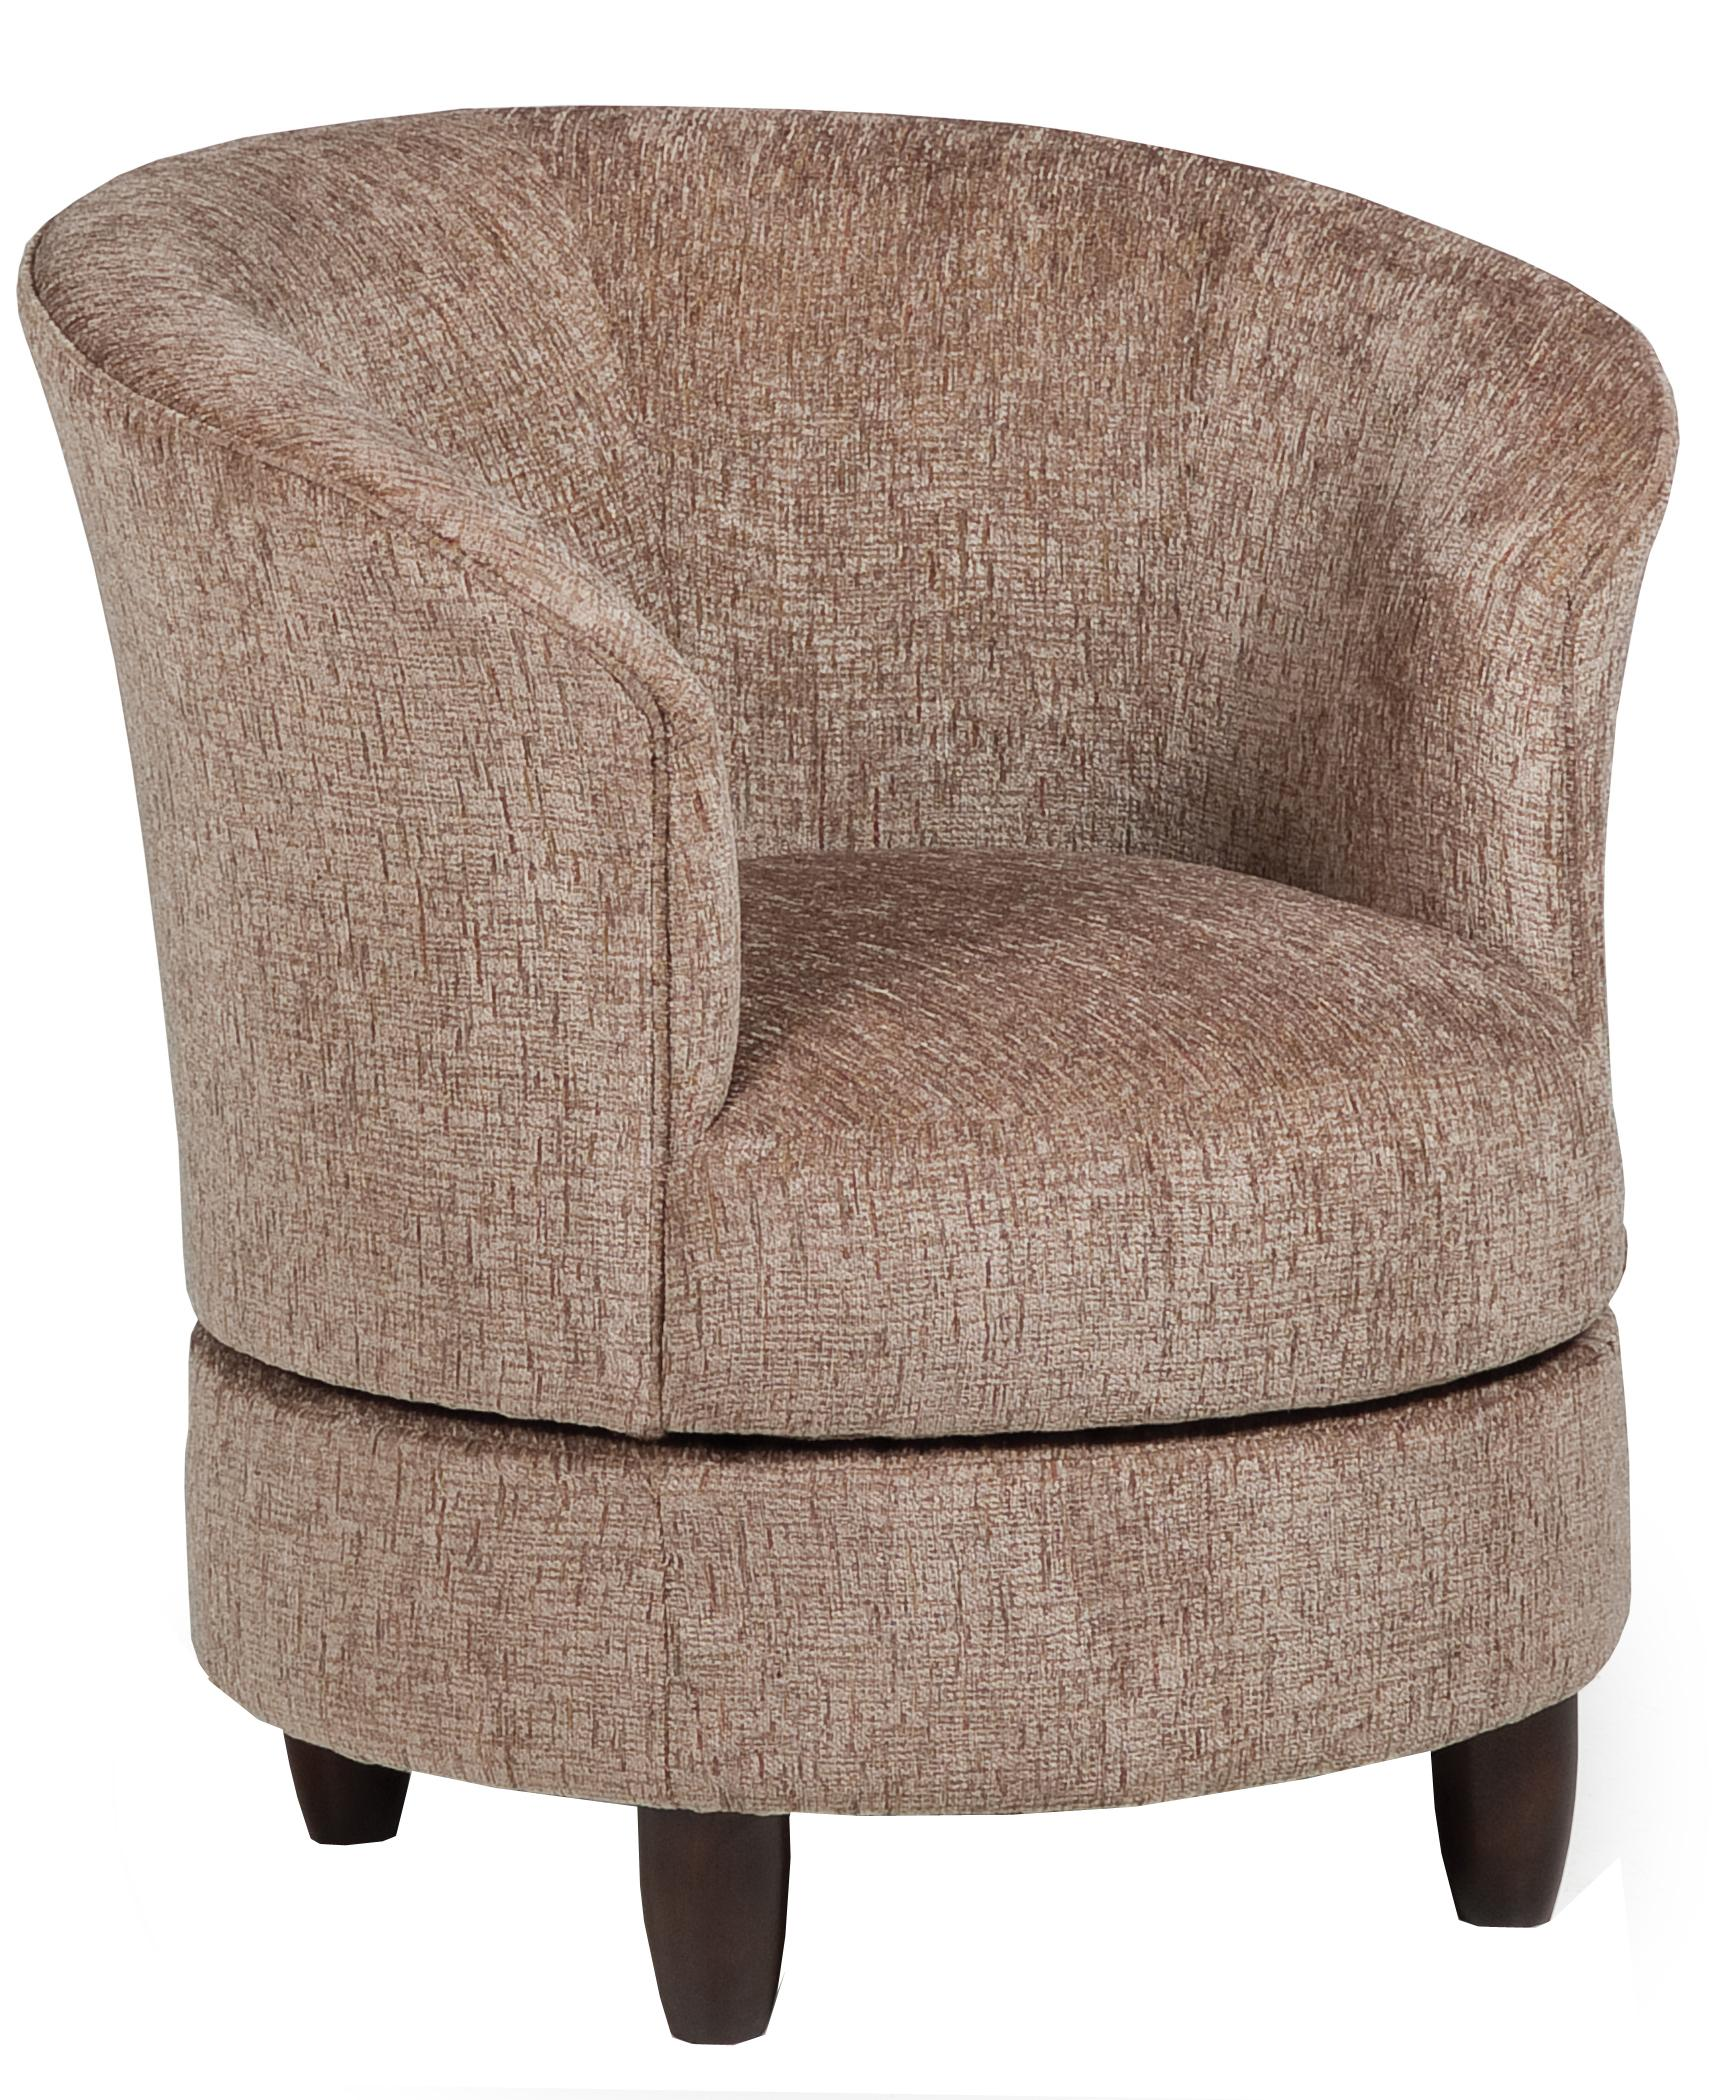 Barrel Chair Swivel Chairs Accent Swivel Barrel Chair By Best Home